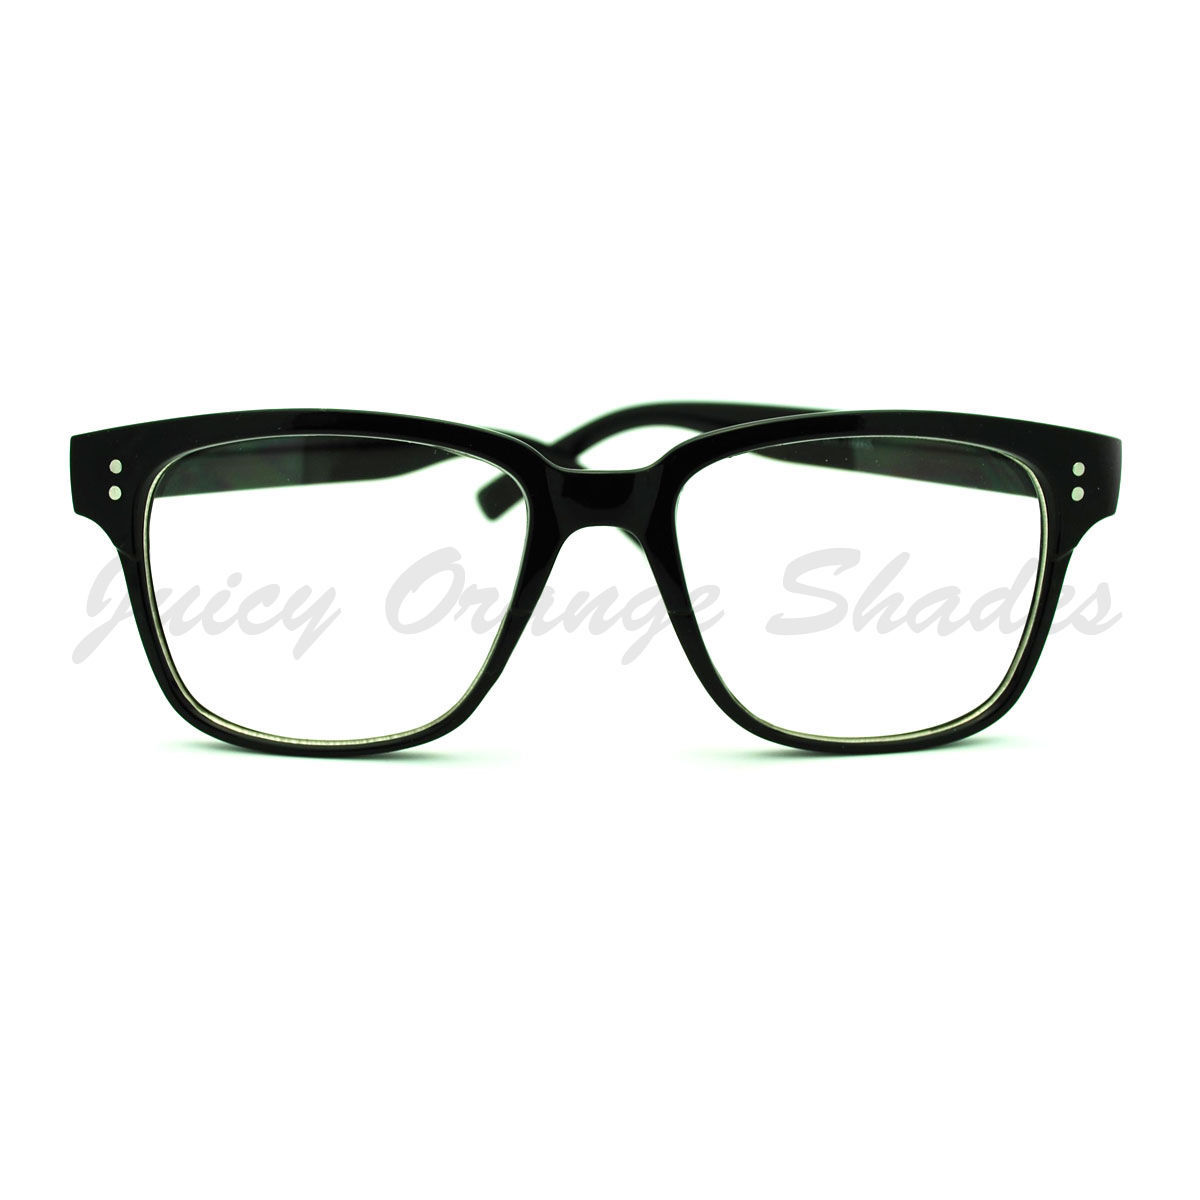 Clear Lens Eyeglasses Square Horn Rimmed Nerdy Fashion Glasses